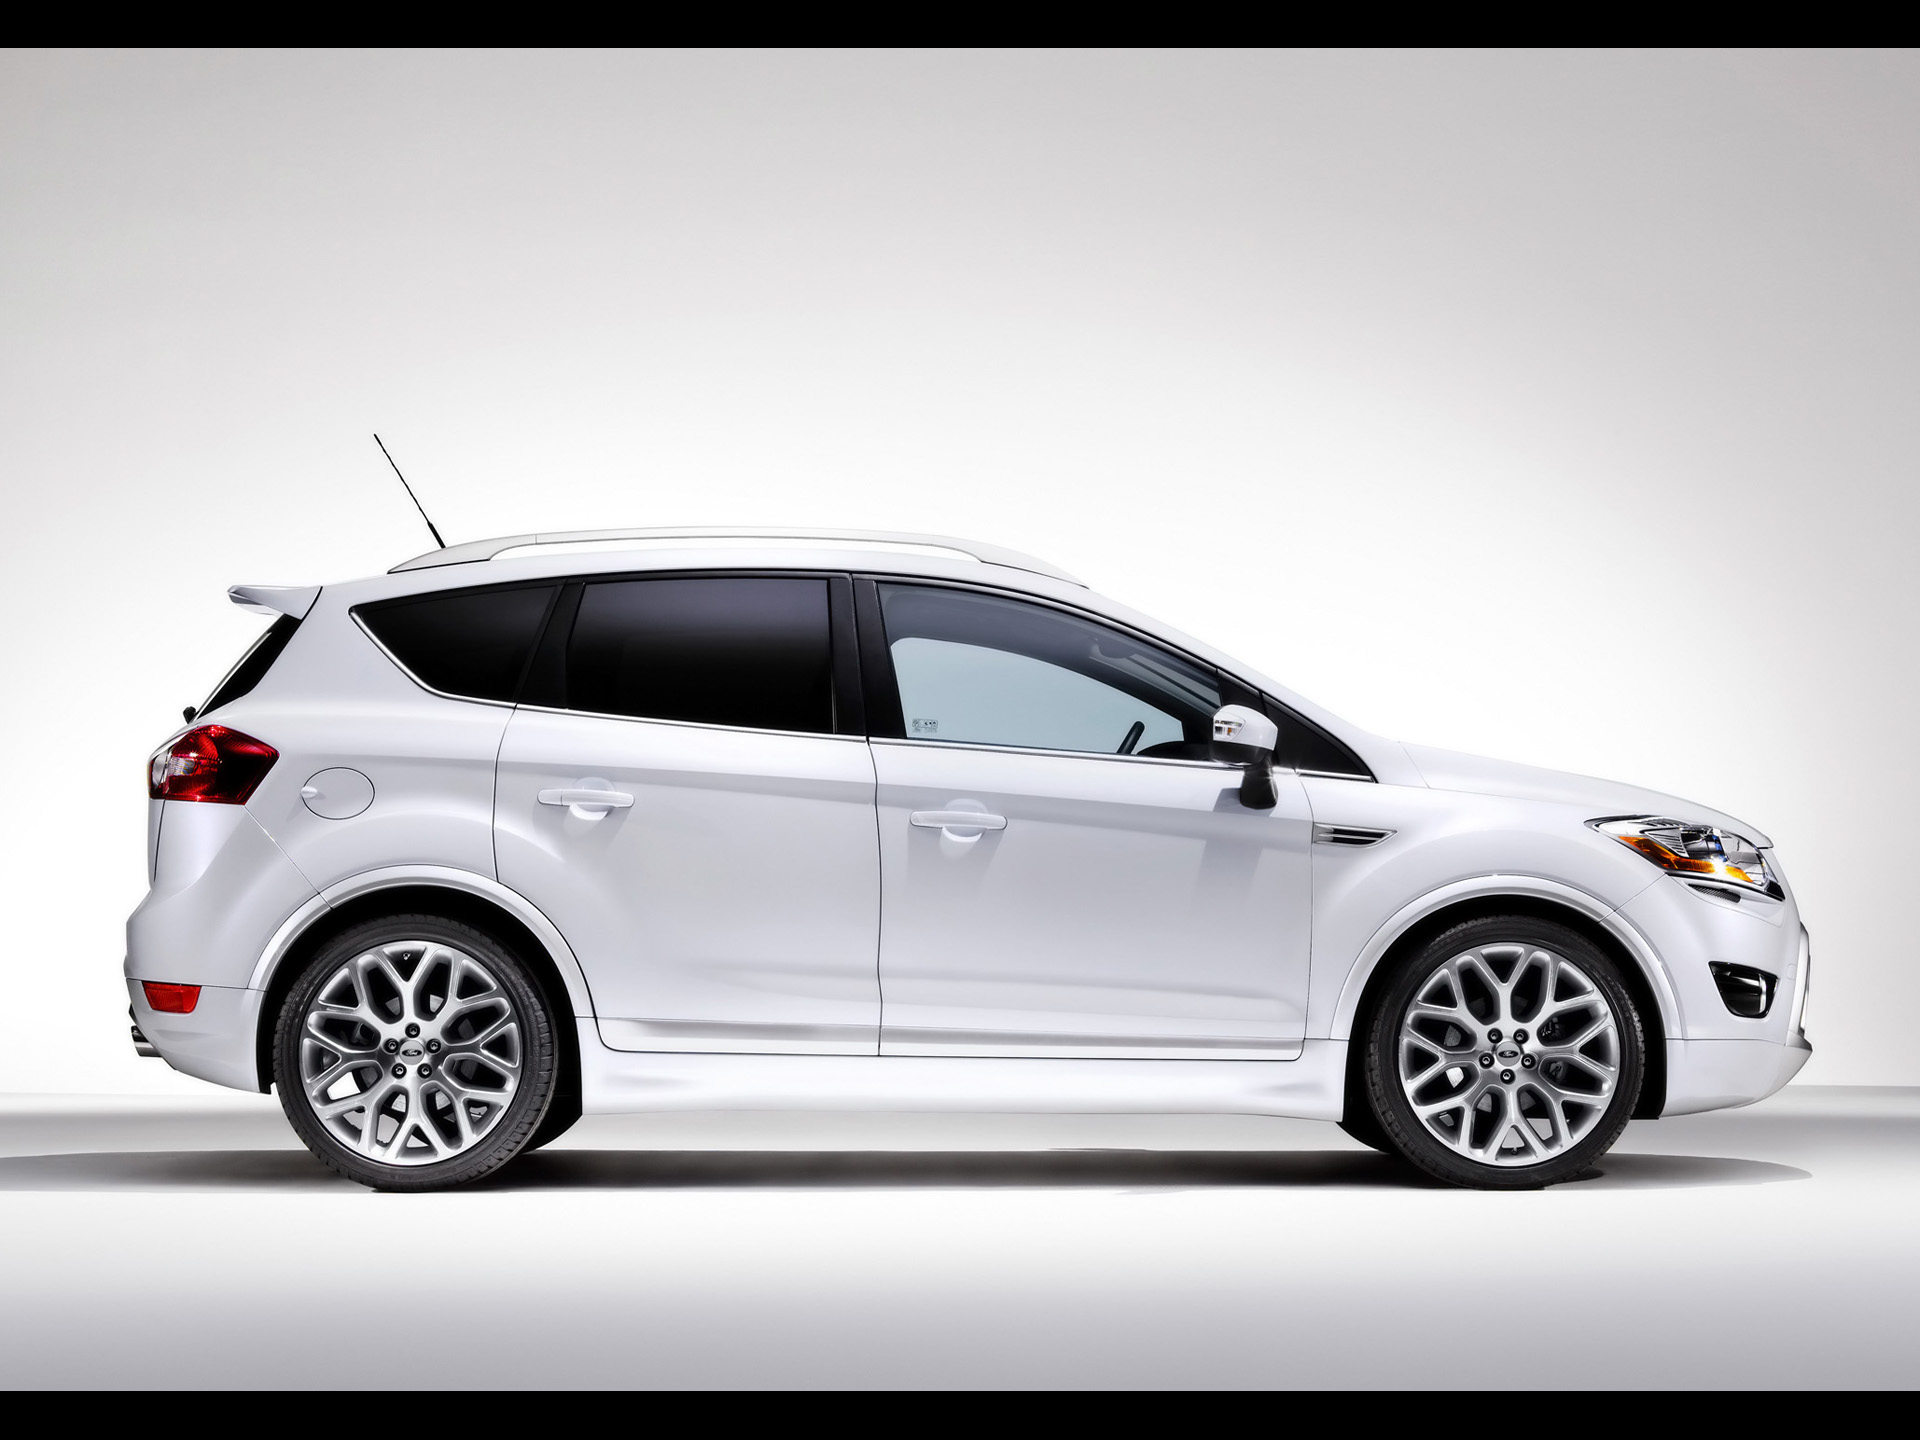 1920x1440 Ford Kuga Side Desktop PC And Mac Wallpaper